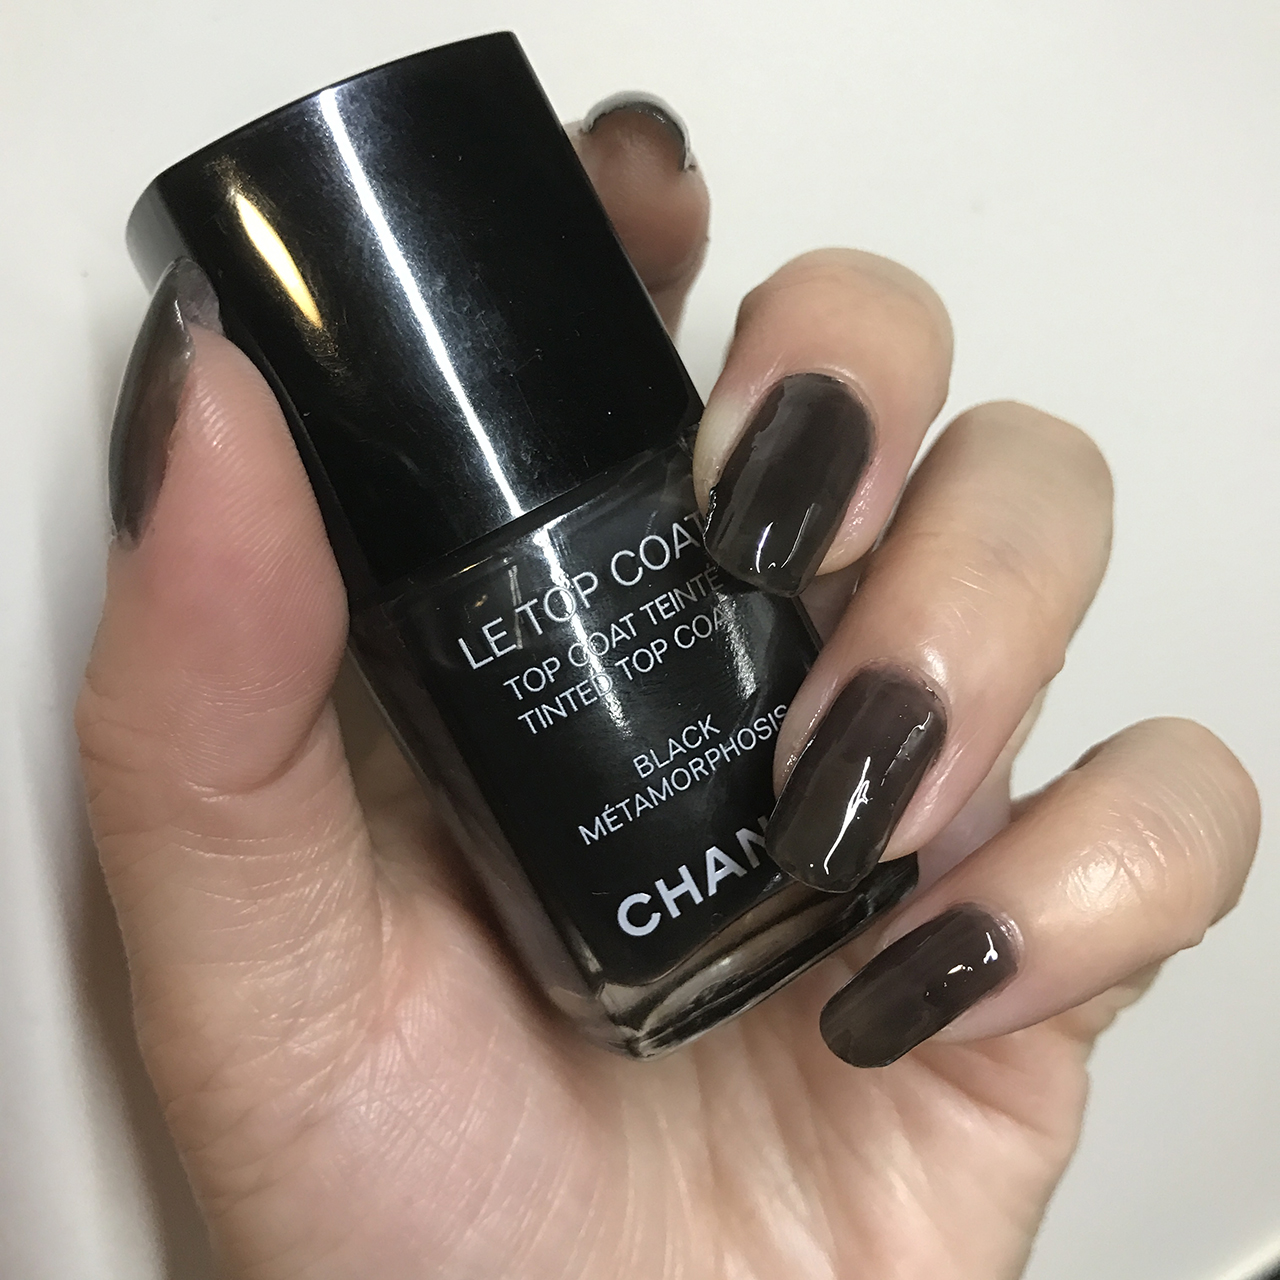 Chanel Le Top Coat Black Metamorphosis nail swatch